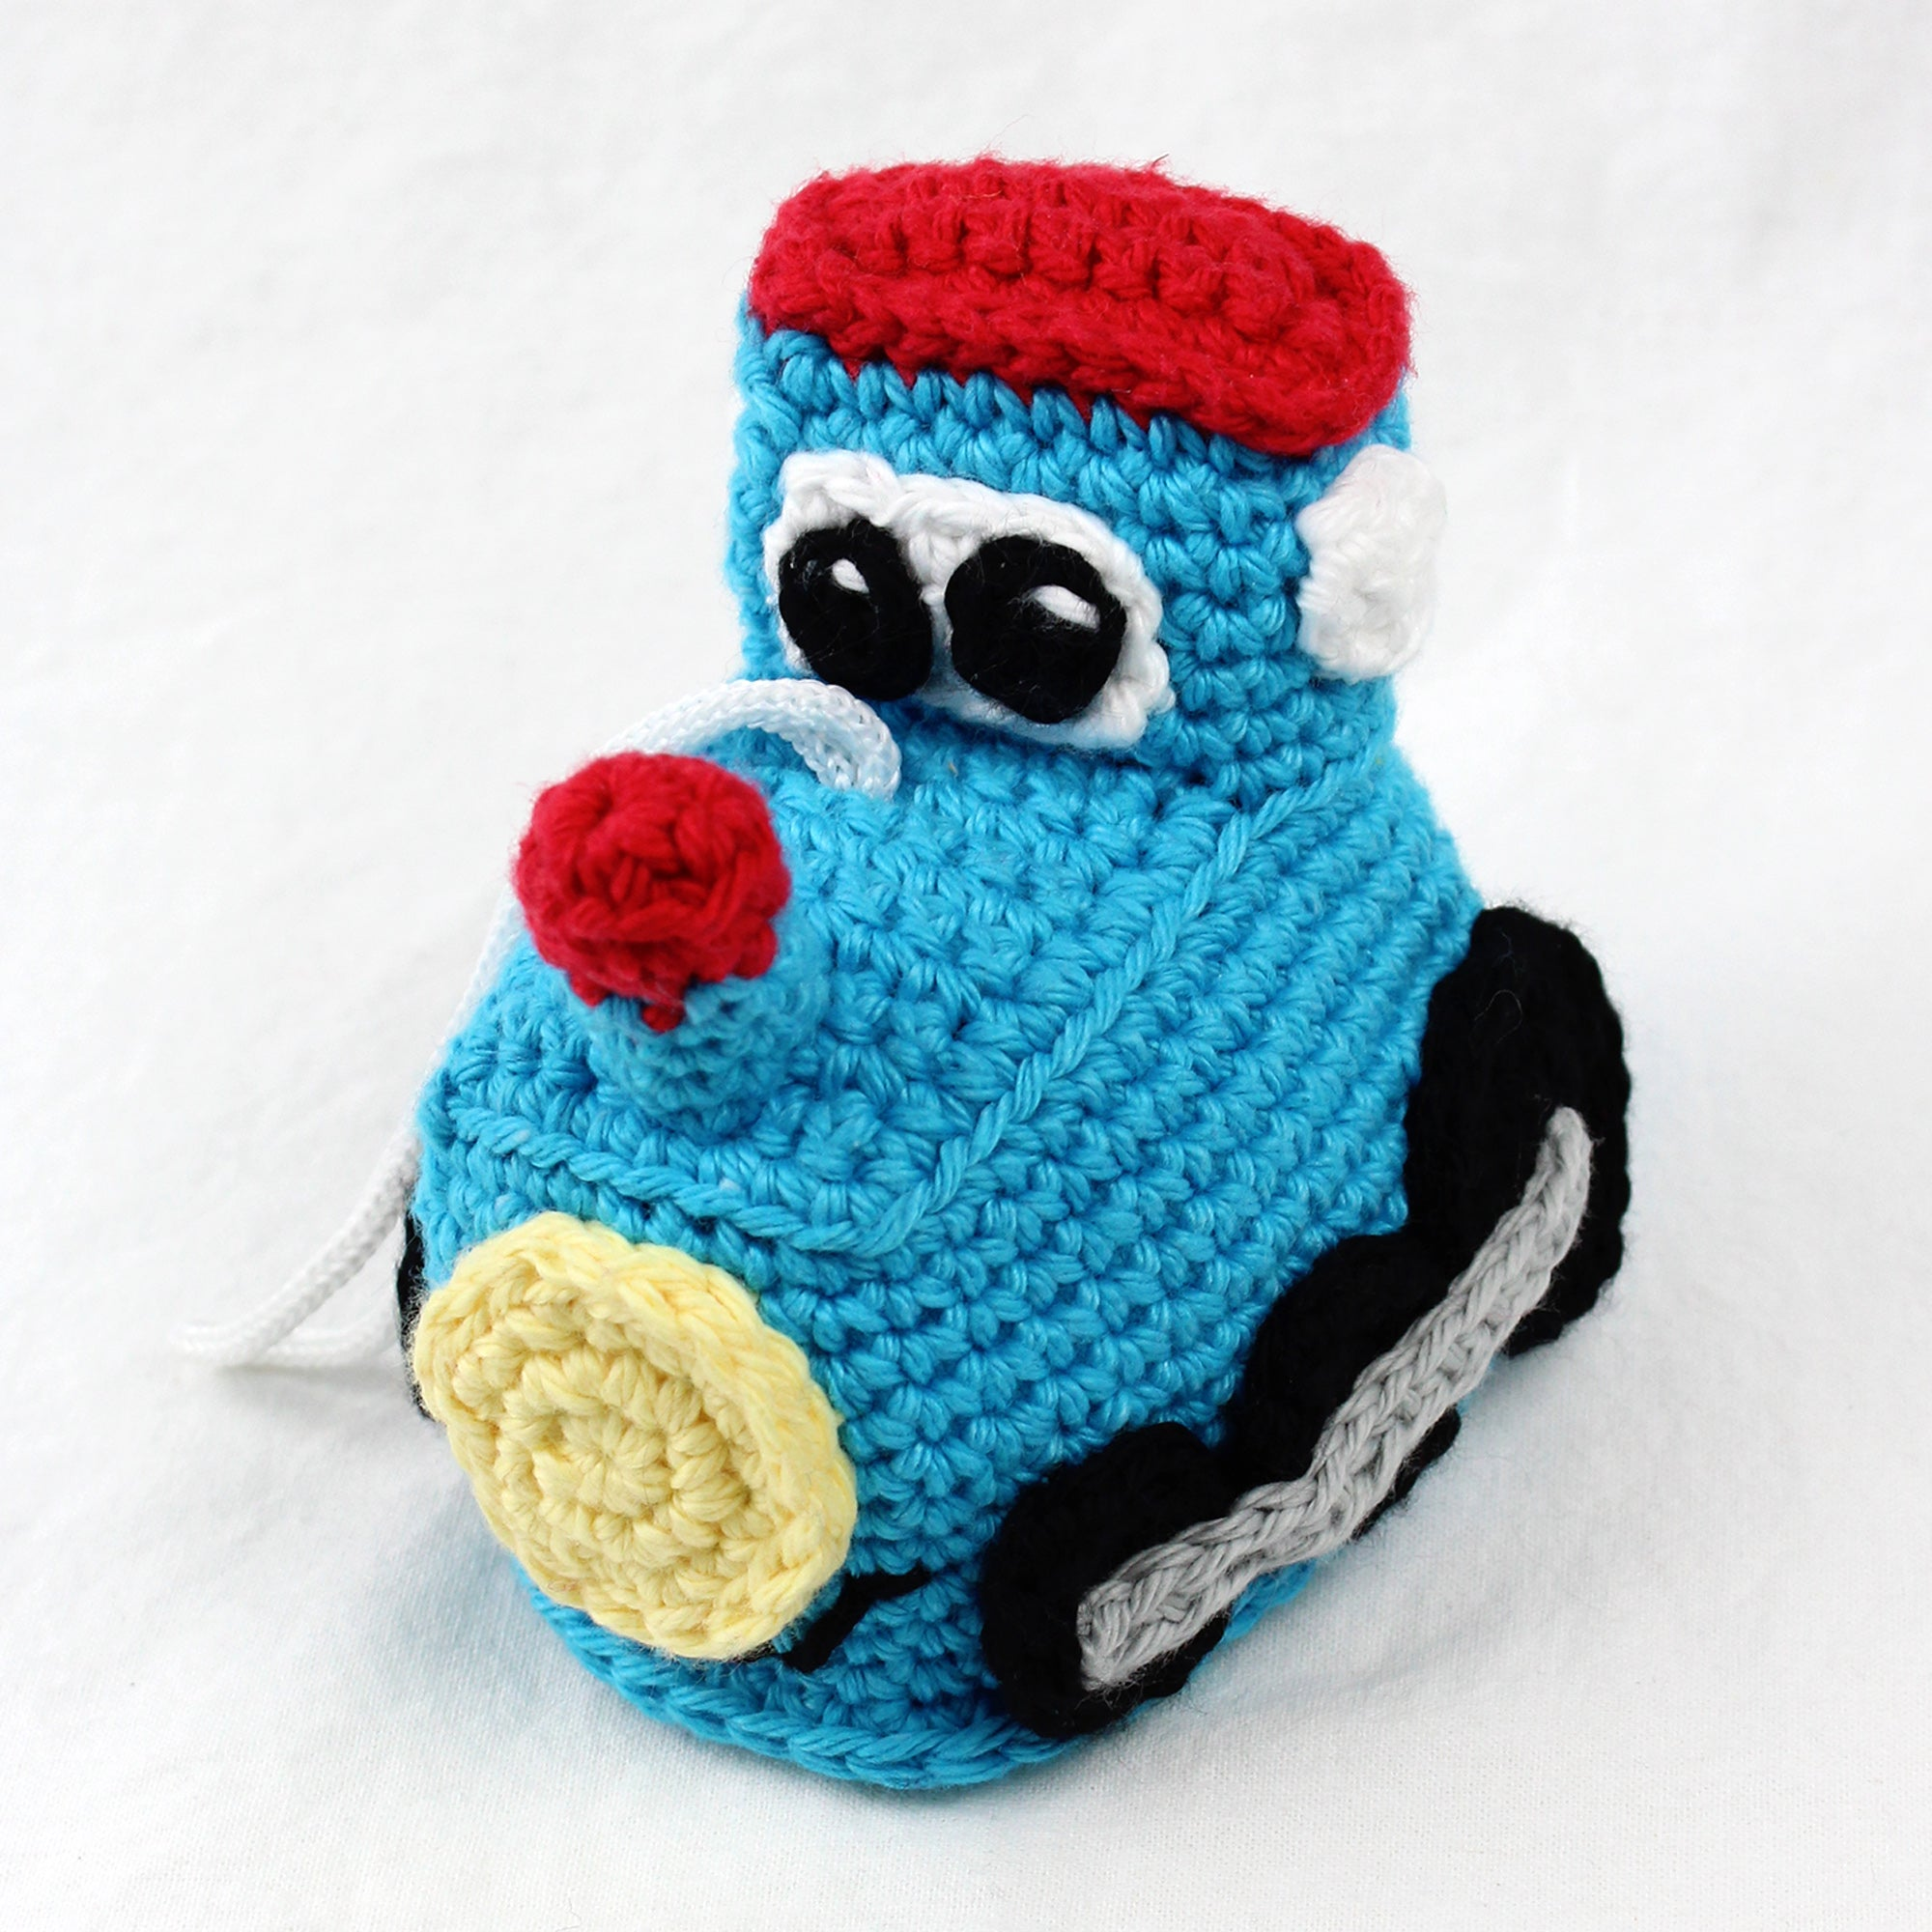 Timmy the Train Crochet Pattern